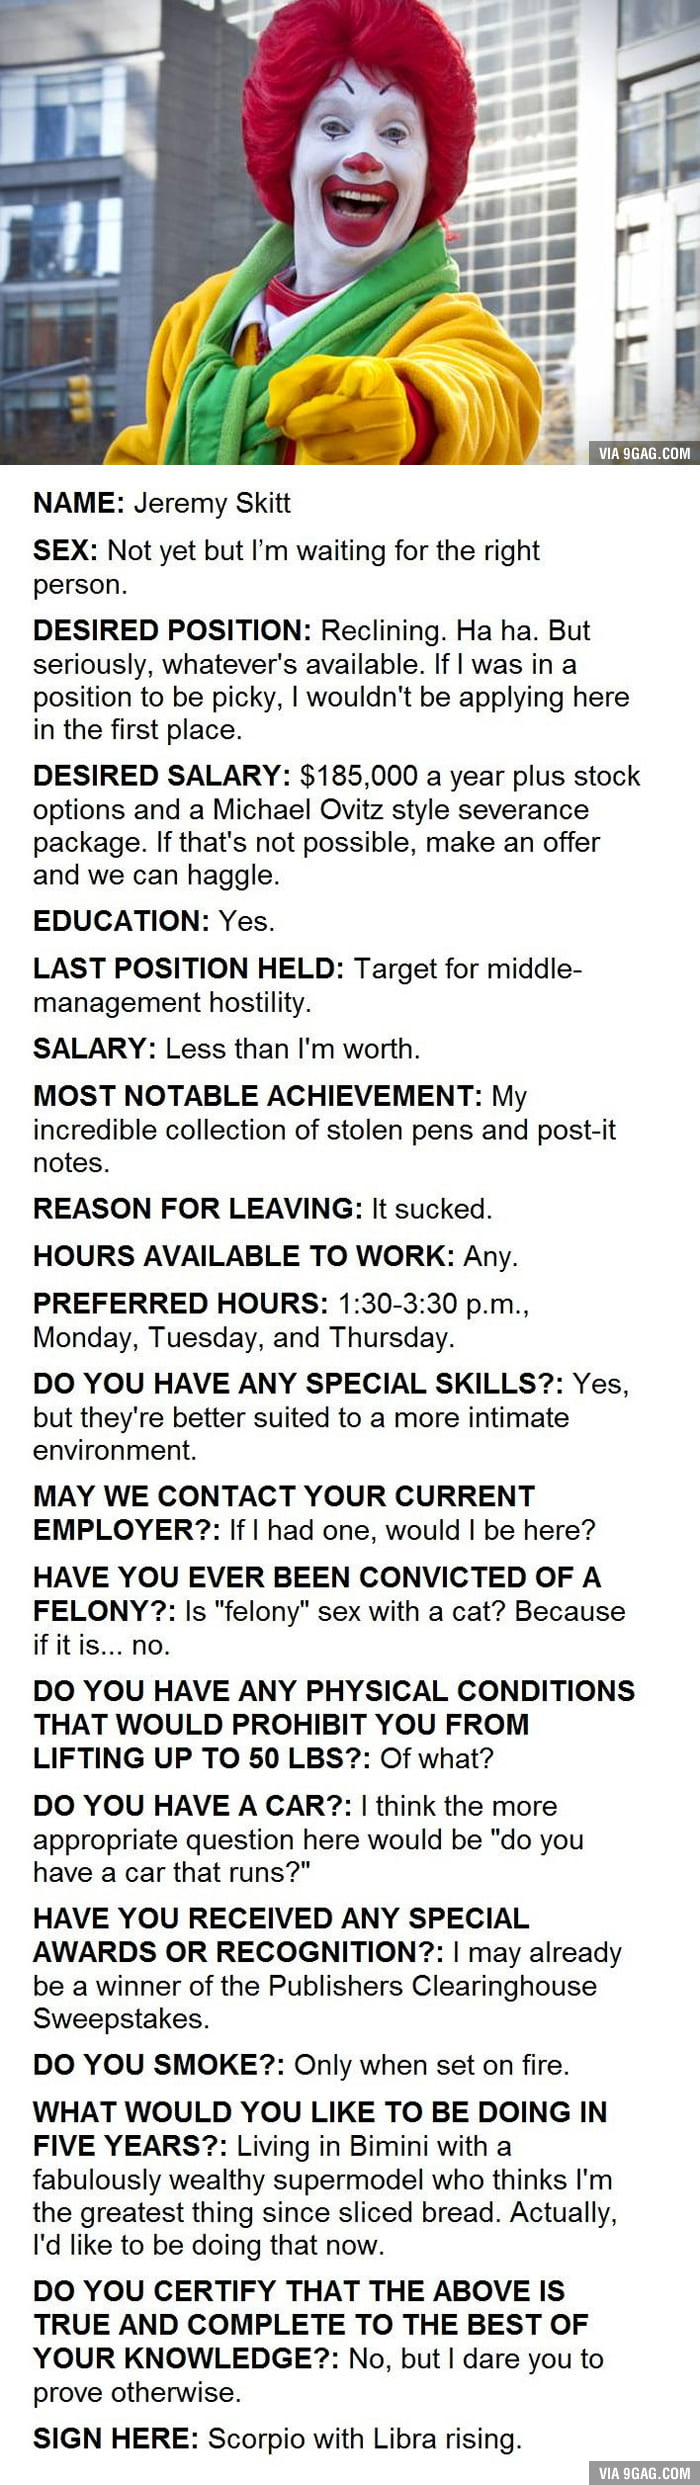 This Is An Actual Job Application Submitted To A McDonald\'s In ...